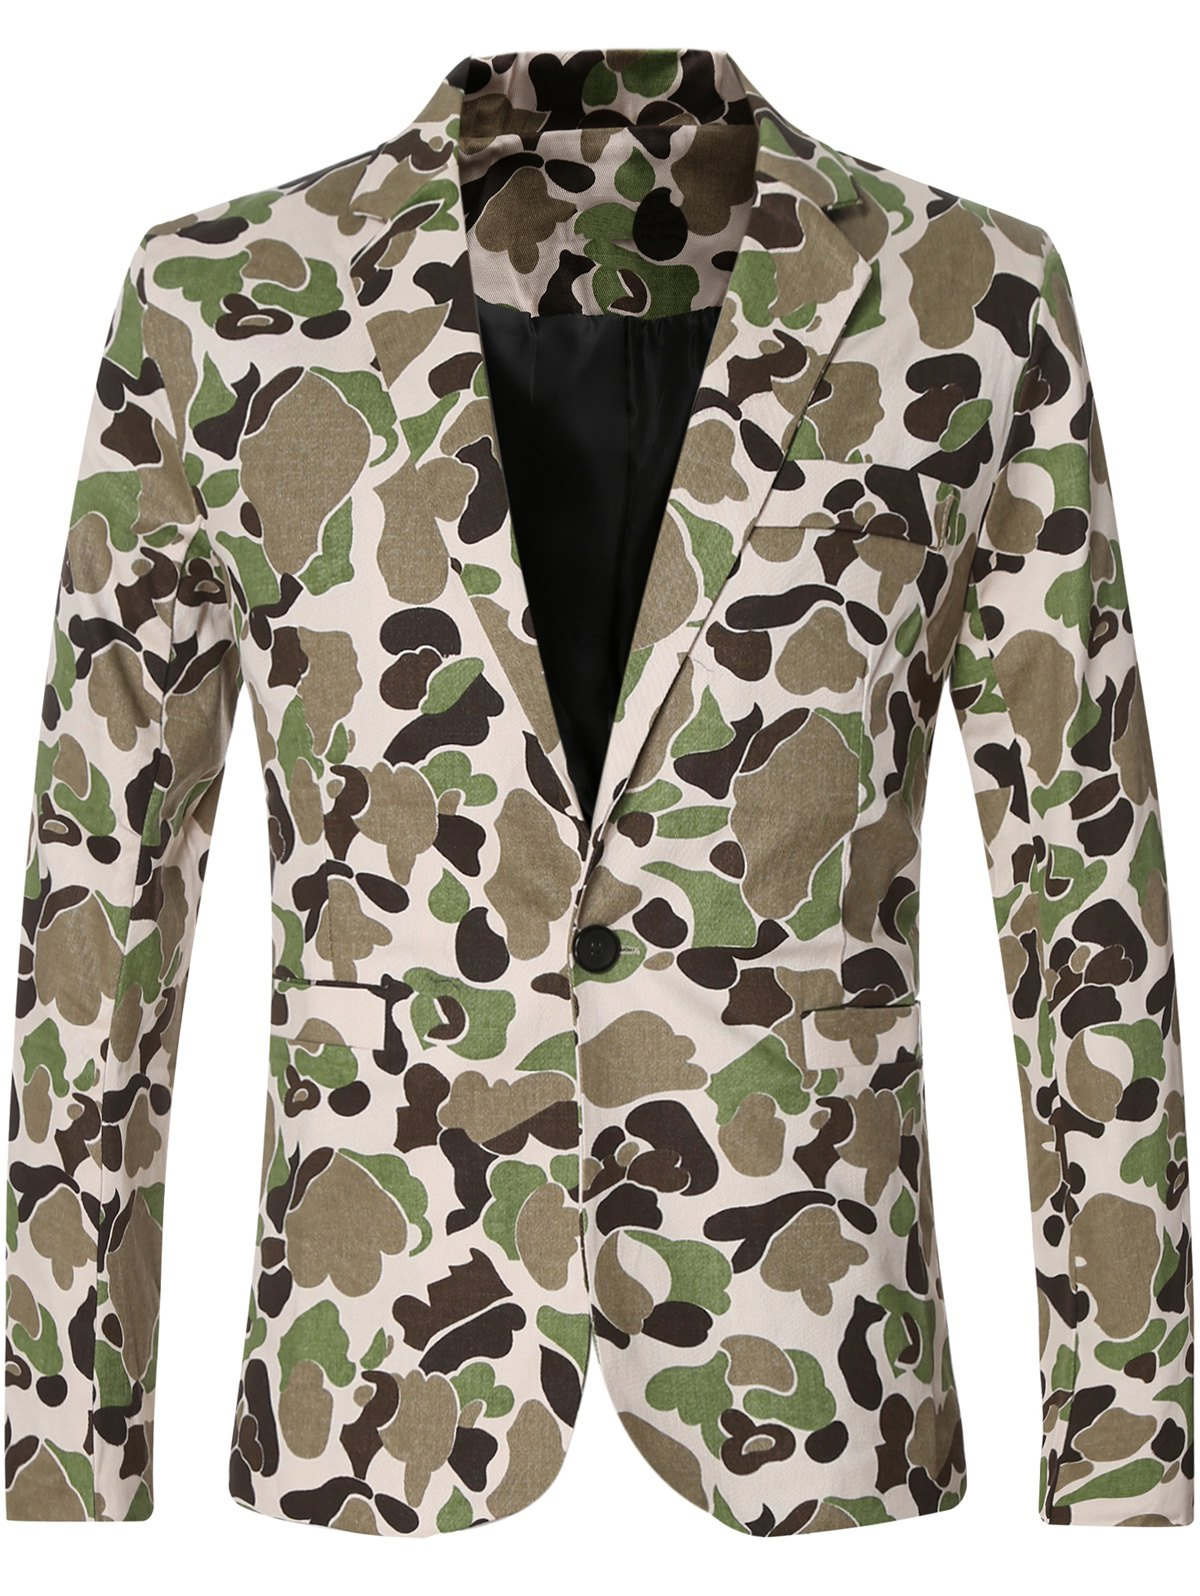 Single Button Opening Notched Lapel Collar Camo Bomber Blazer For Men - GREEN 2XL